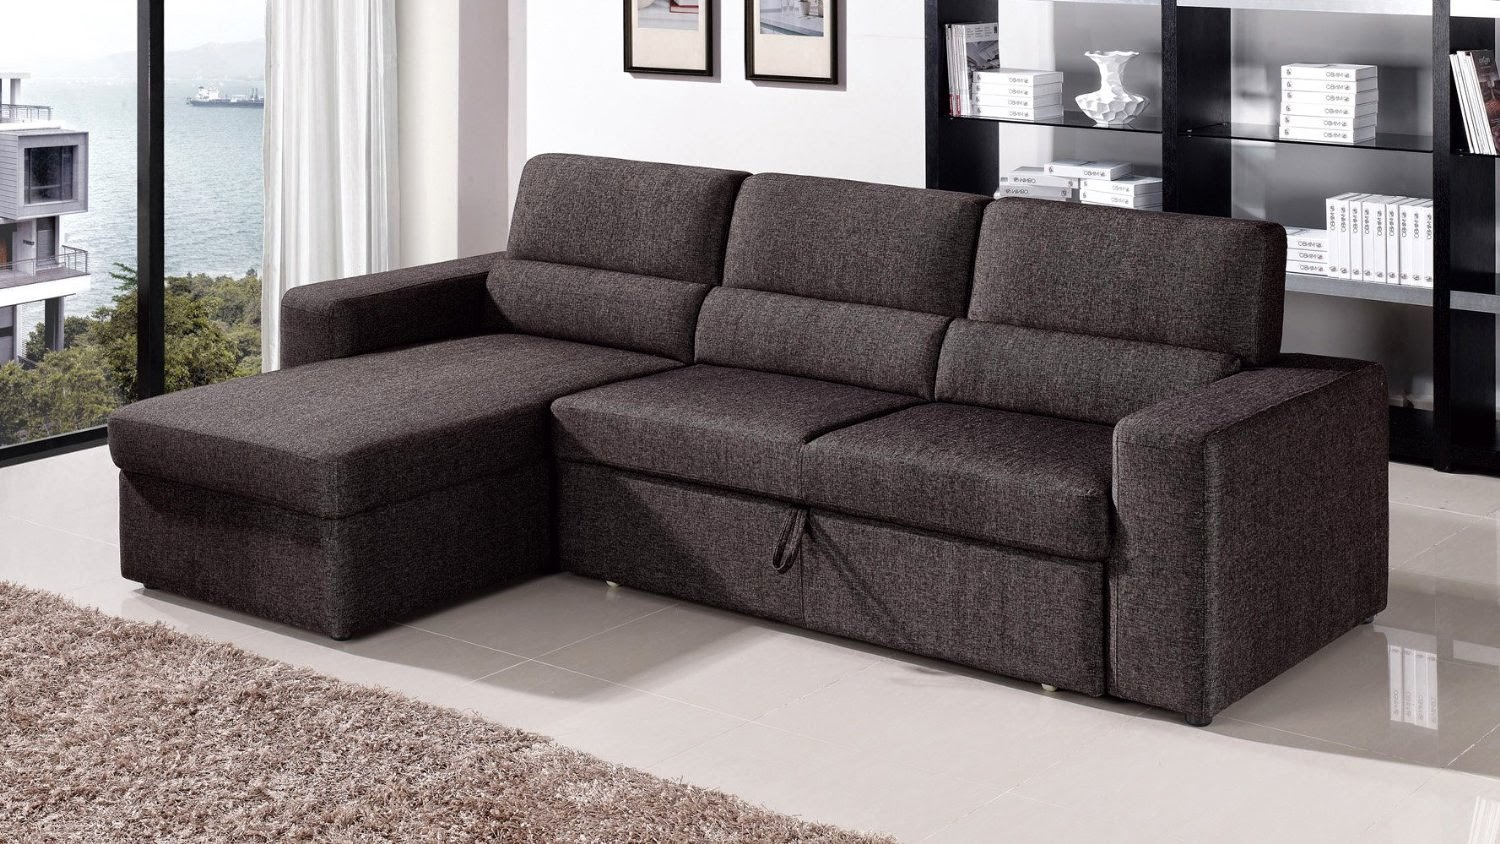 Pull Out Bed Sofa Custom Slipcovers Miami Couch Sectional With